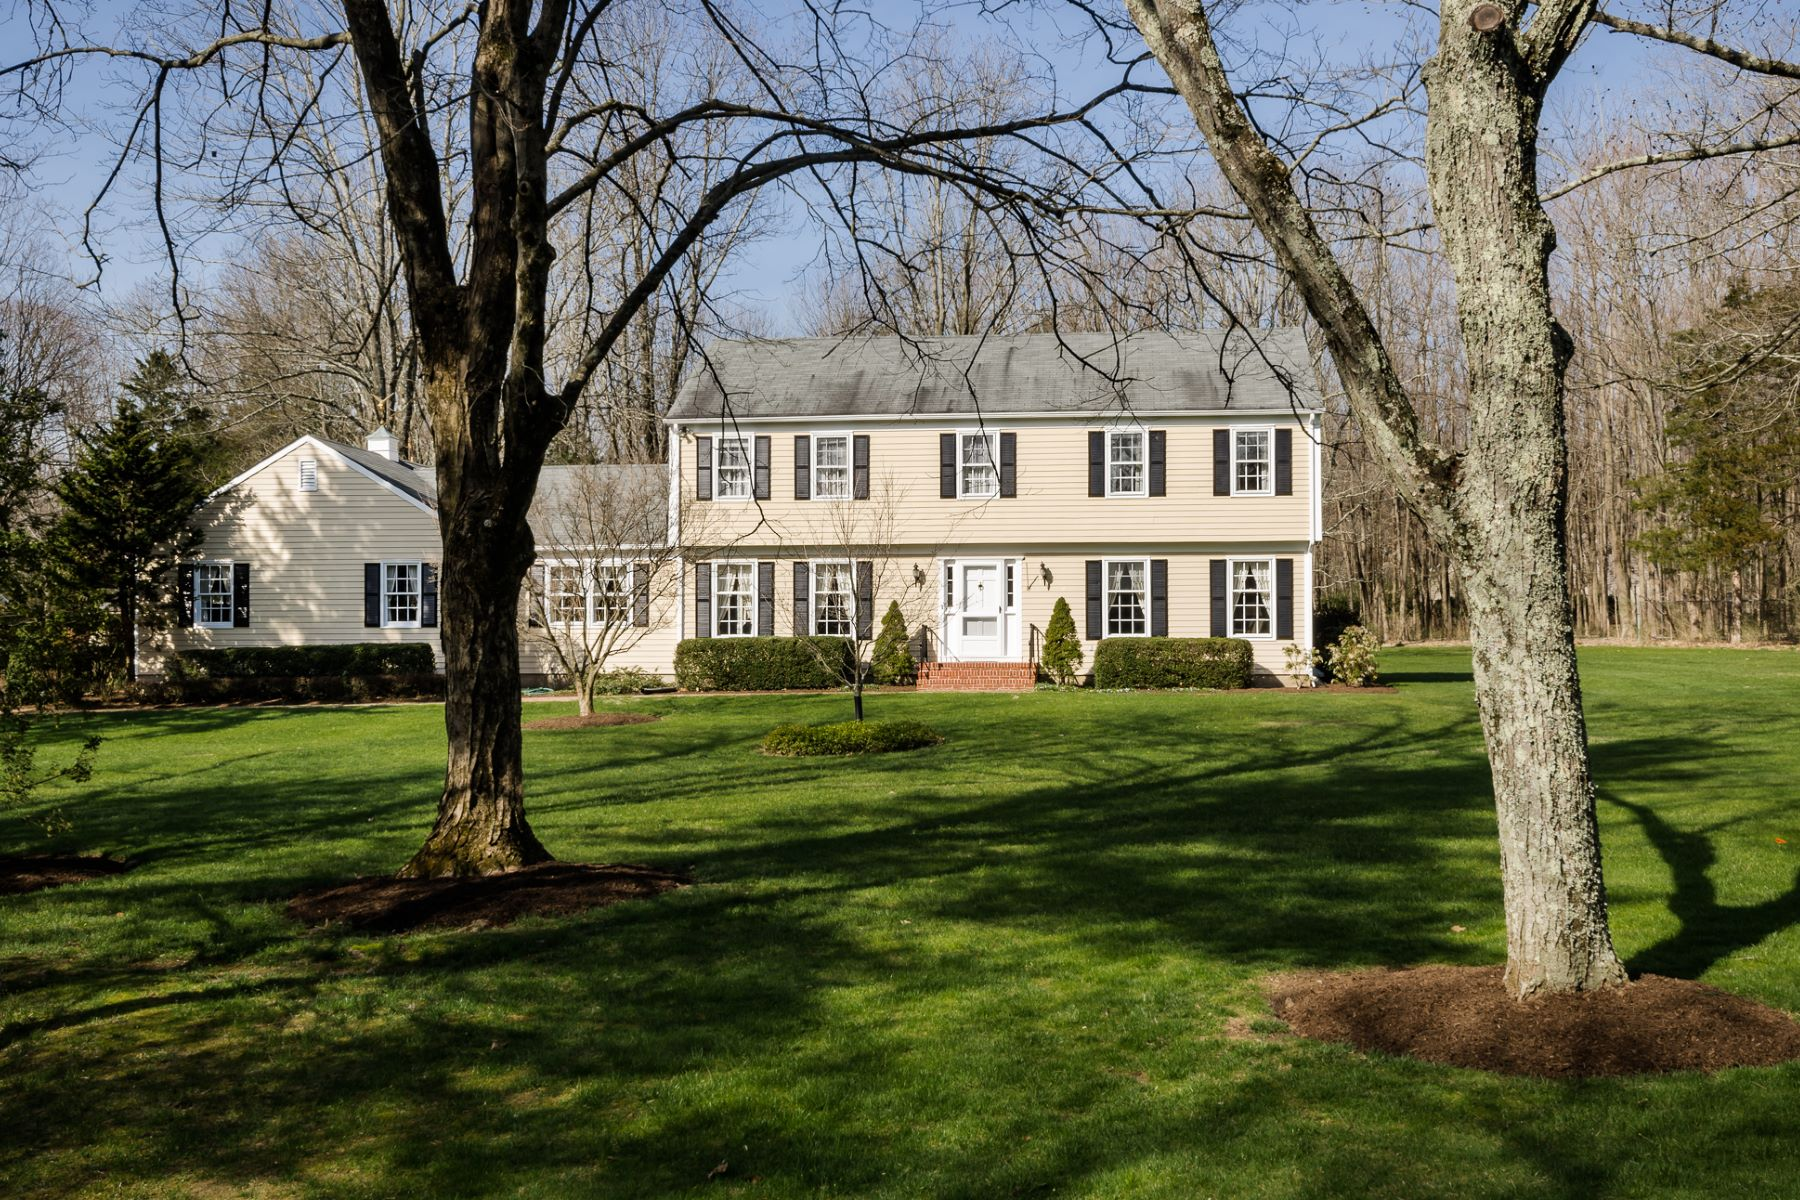 Casa Unifamiliar por un Venta en Superb Neighborhood, Splendid Yard, Solid House 108 Greenway Terrace Princeton, Nueva Jersey, 08540 Estados Unidos